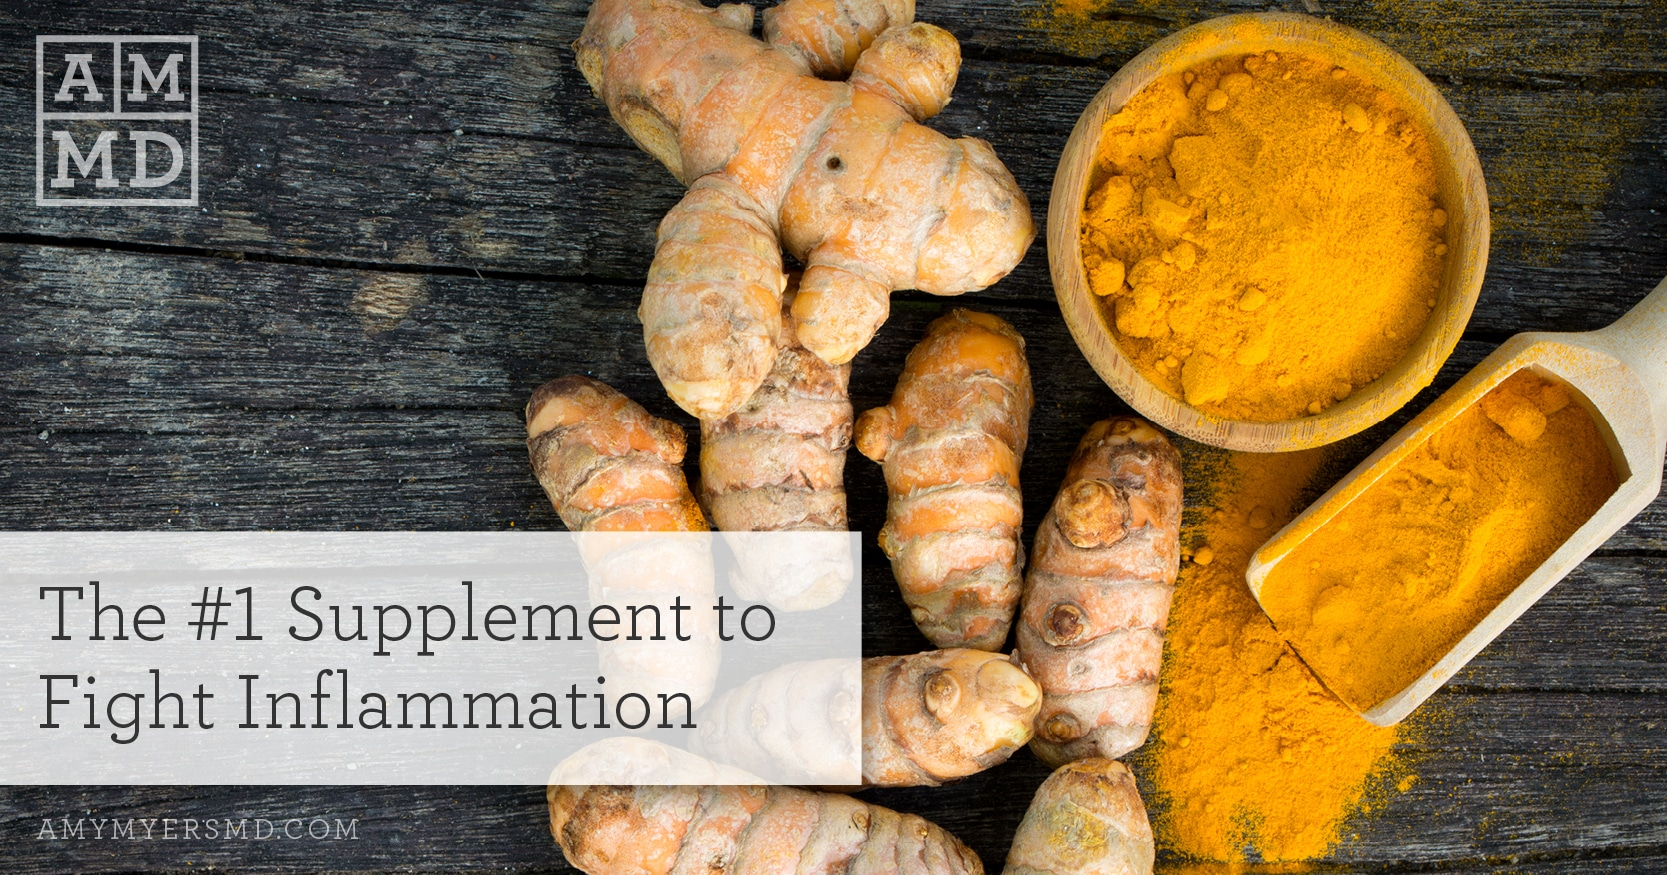 #1 supplement to fight inflammation